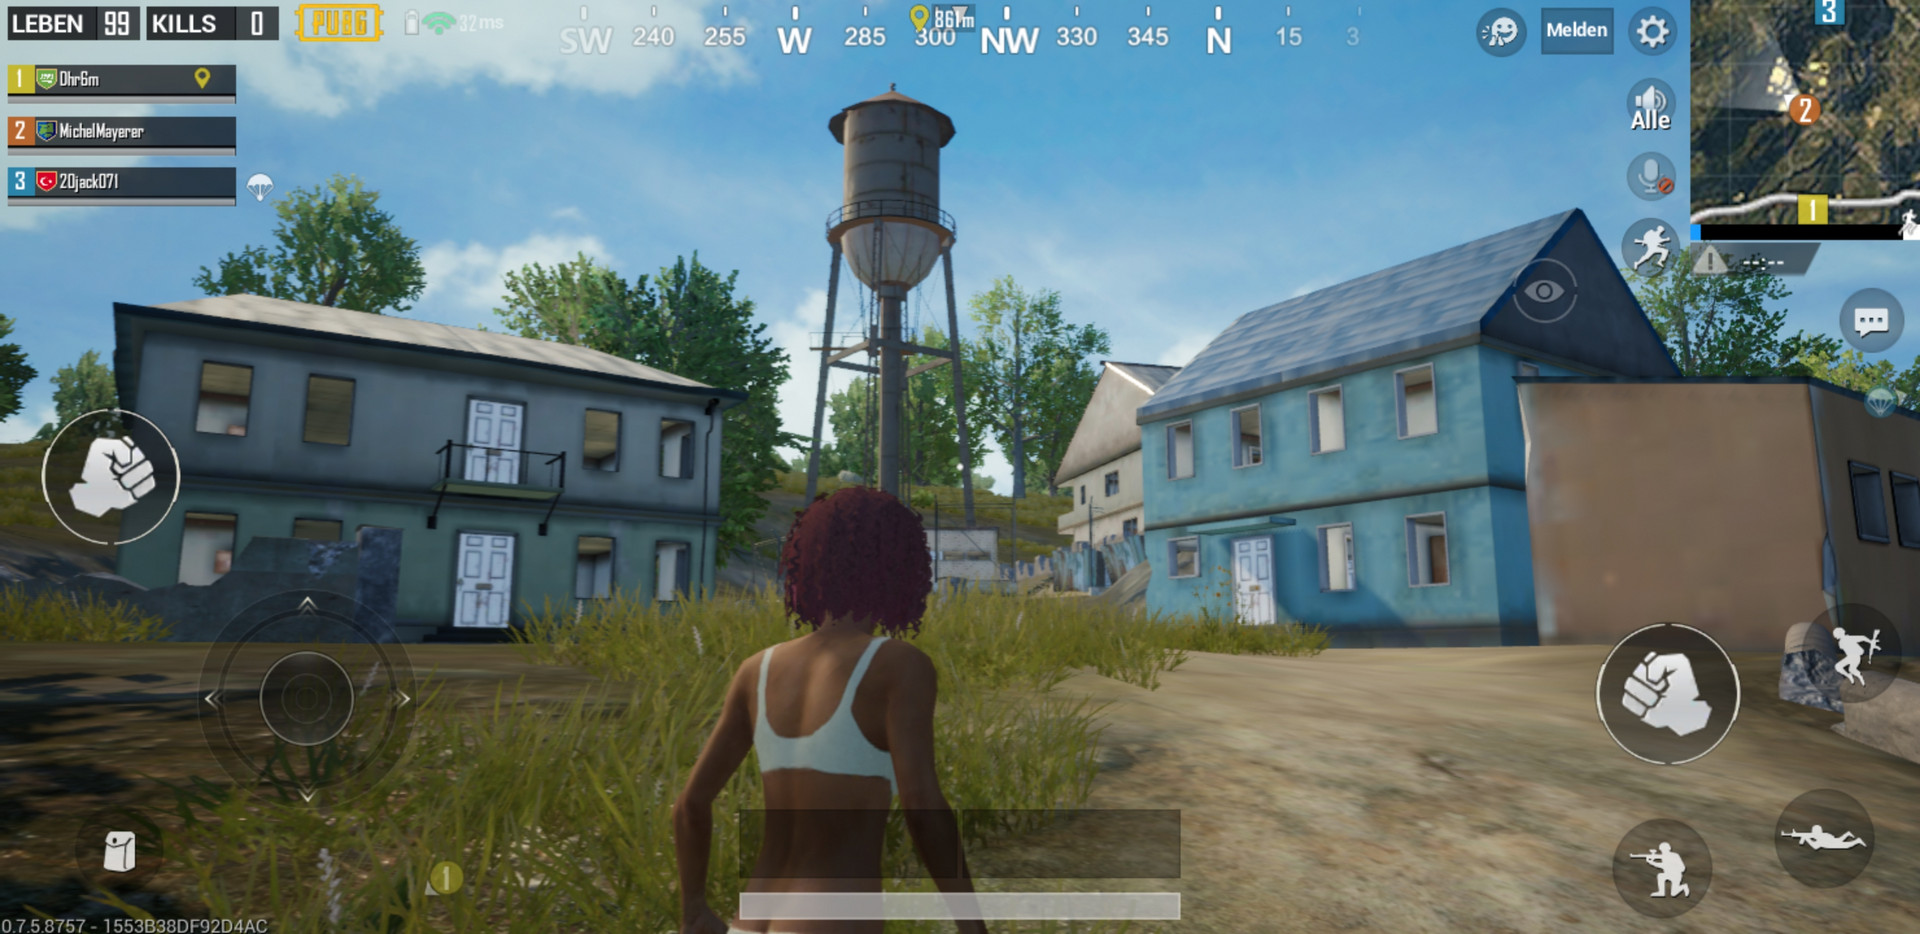 Config Pubg Hdr 0 7 0: Samsung Galaxy Note 9 Smartphone Review